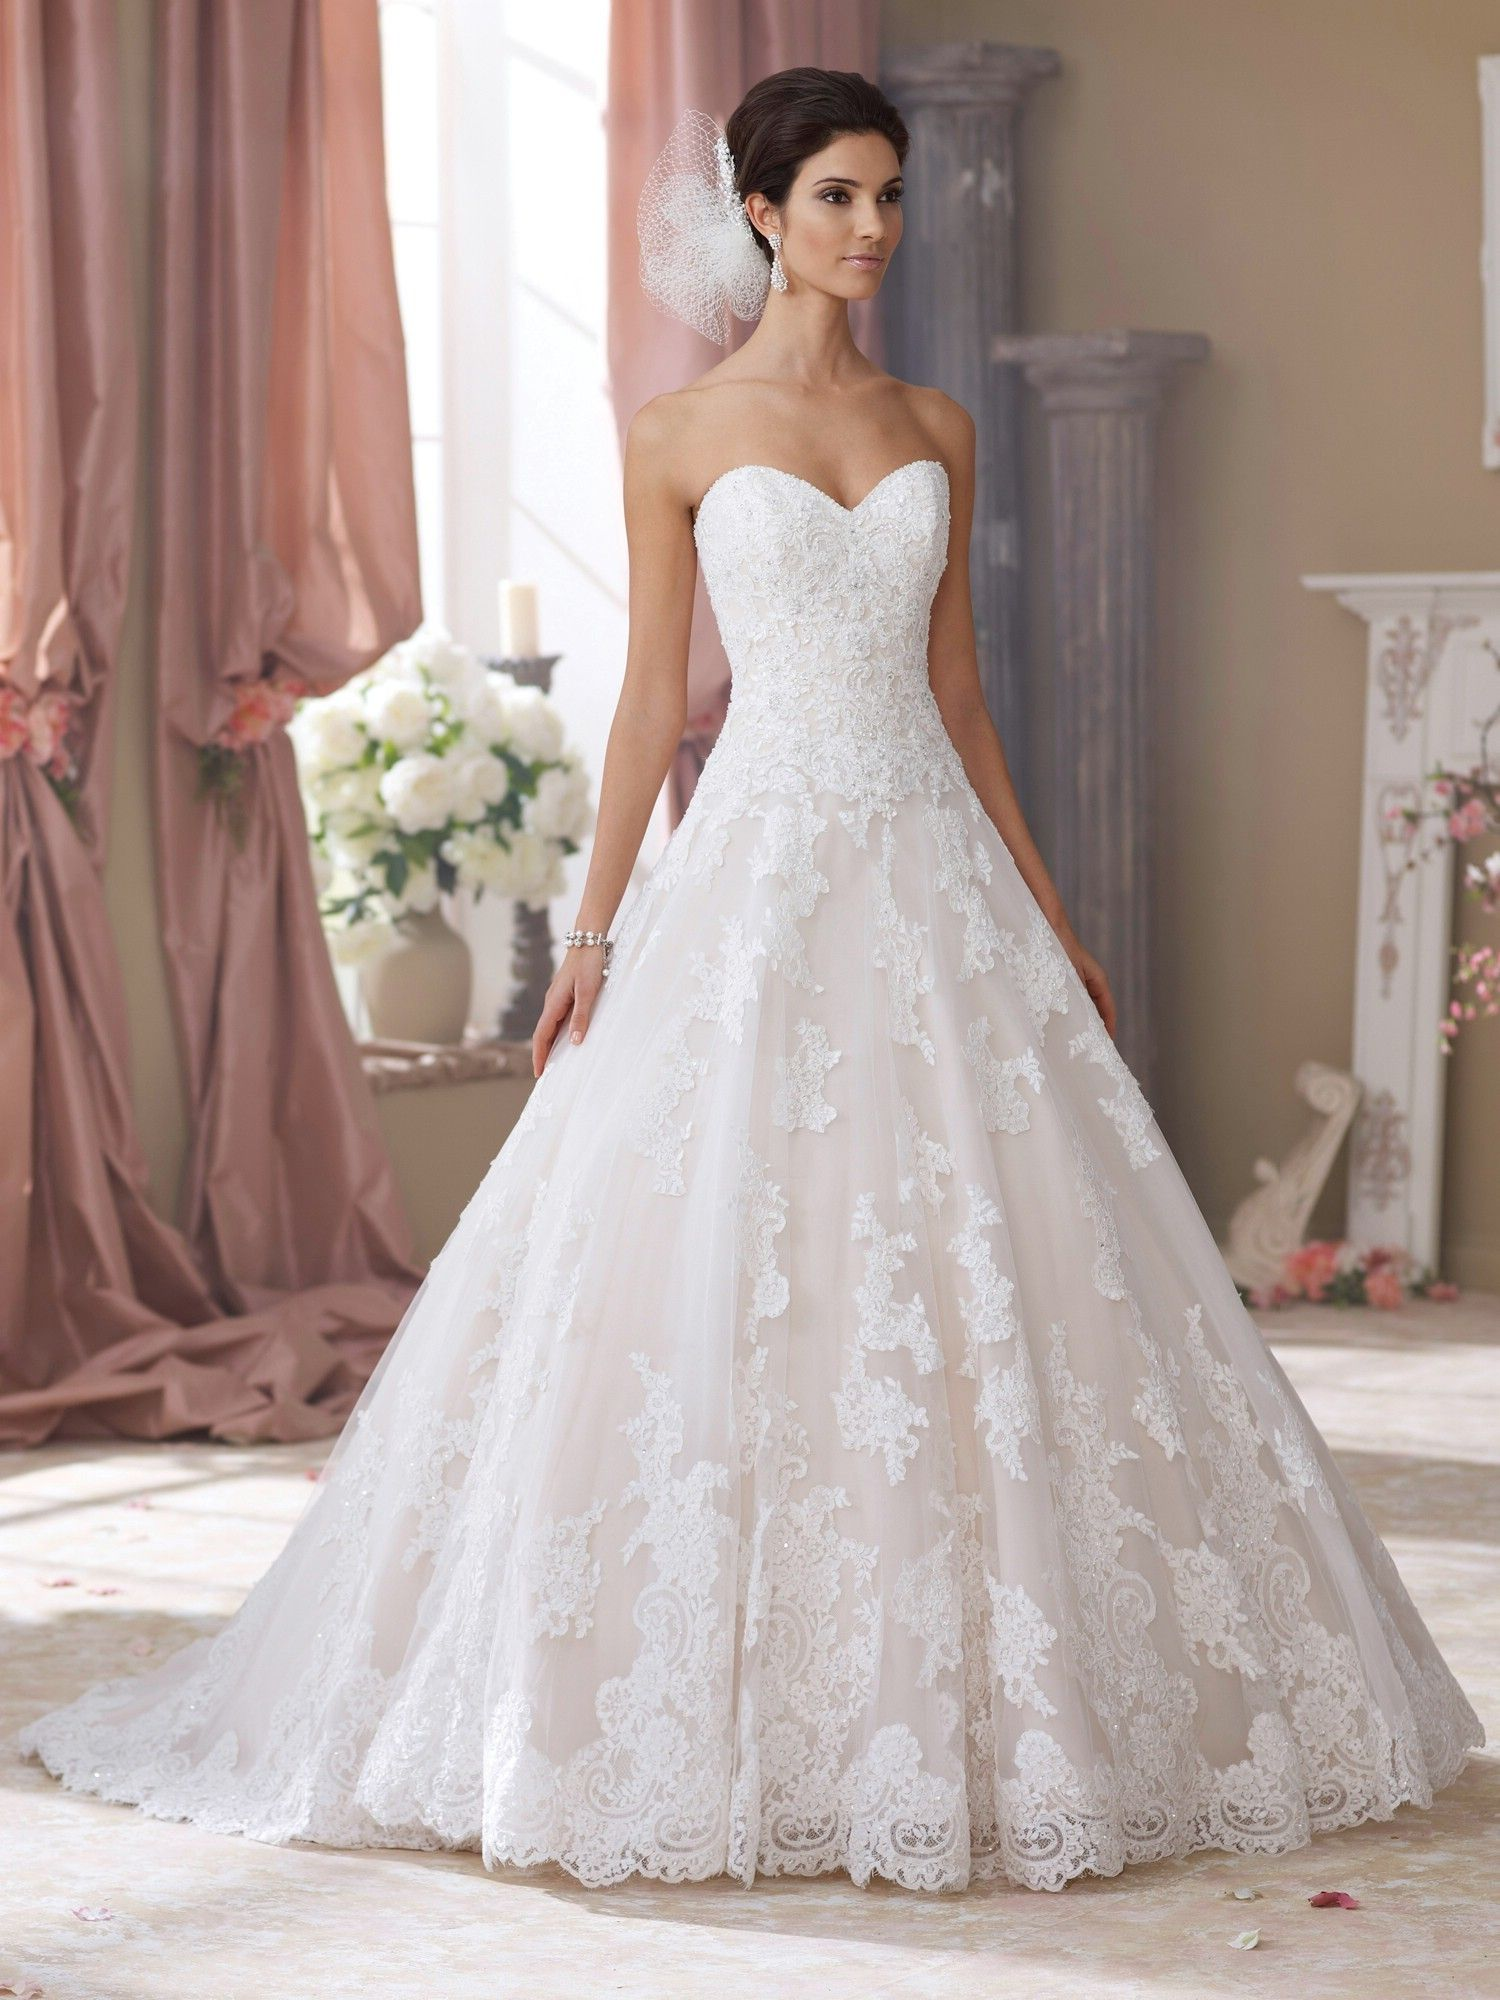 Wyomia 214206 By David Tutera Mon Cheri Fall 2017 Is A Corded Lace Tulle And Organza Over Taffeta Ball Gown With Sweetheart Neckline